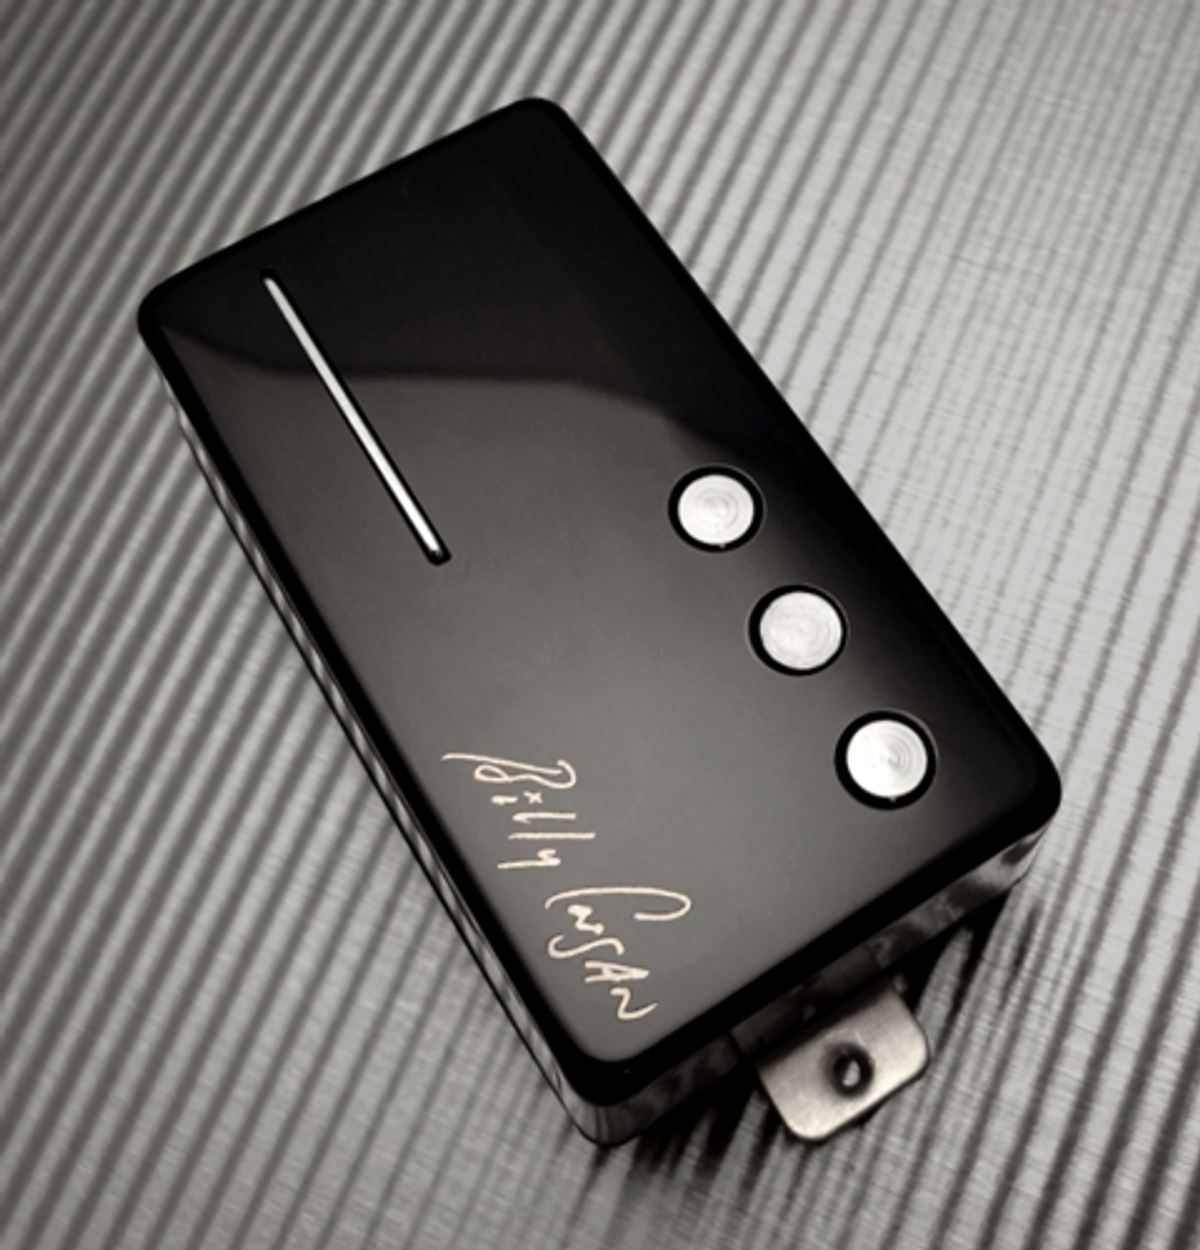 Billy Corgan and Railhammer Pickups Team Up for Signature Model